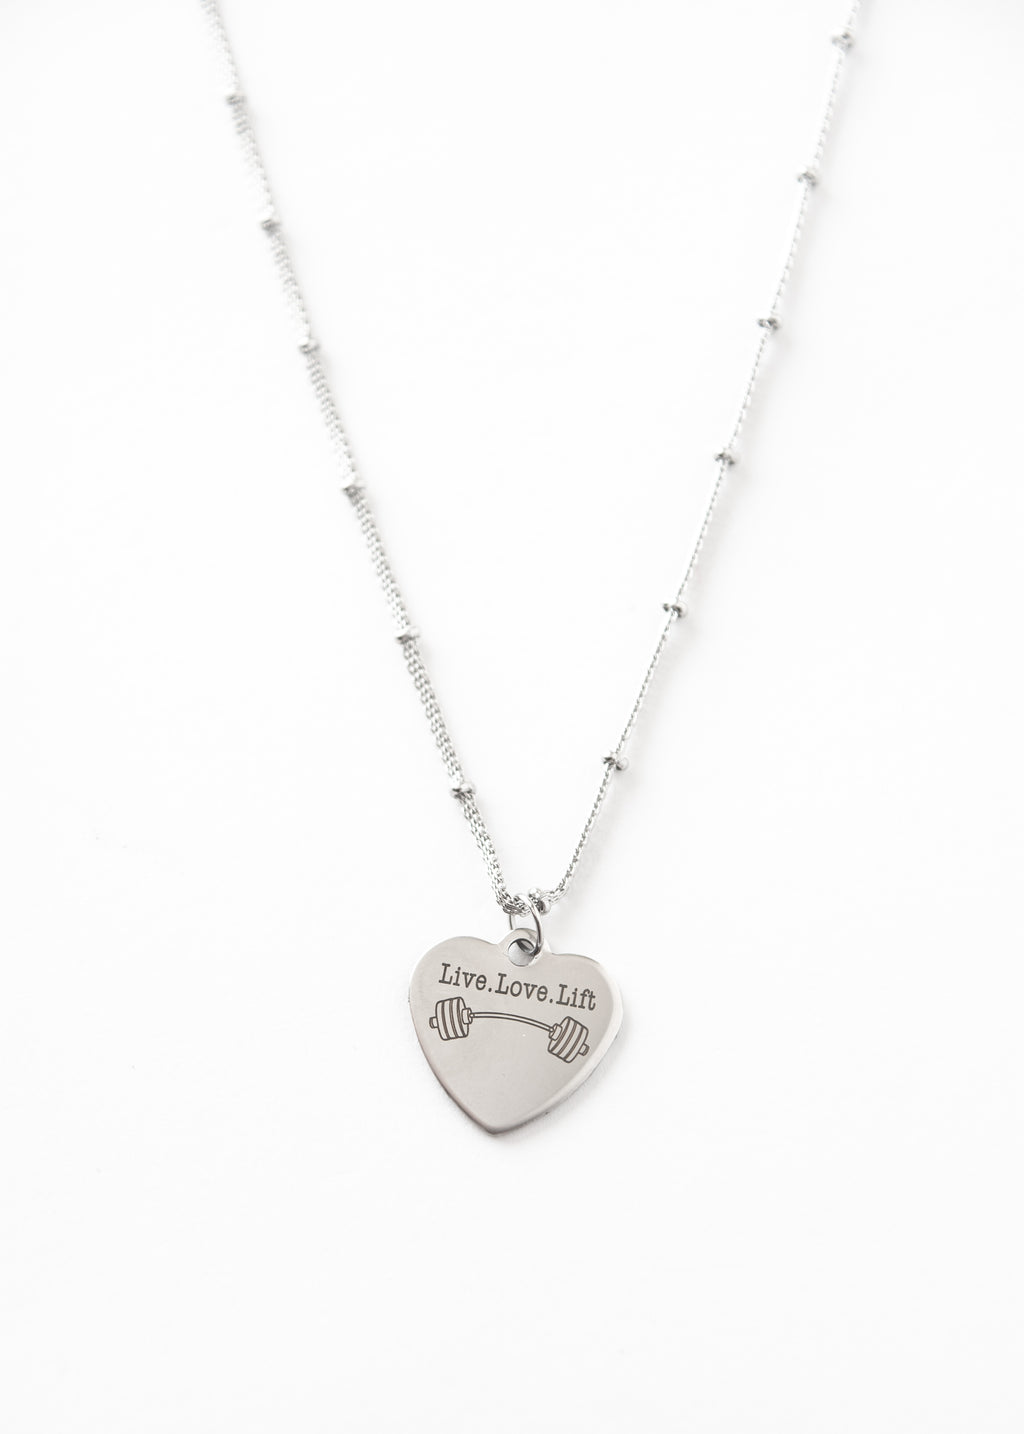 Beck and Boosh Live Love Lift Short Necklace  Heart Shaped Pendant with Live, Love, Lift written on it accompanied by a dumb bell Silver Plated Stainless Steel